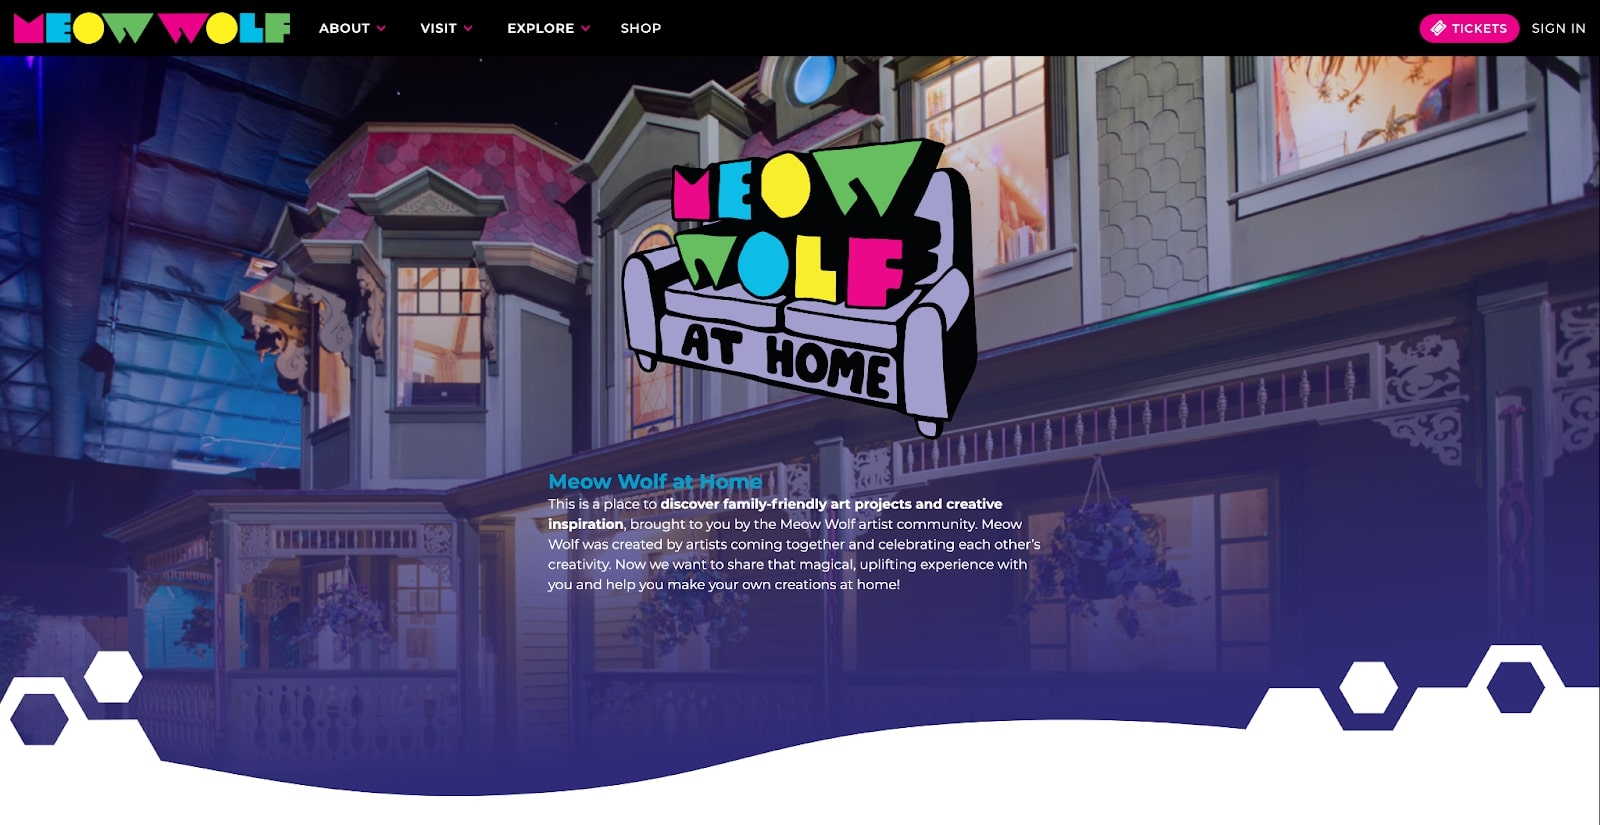 A view of Meow Wolf At Home.